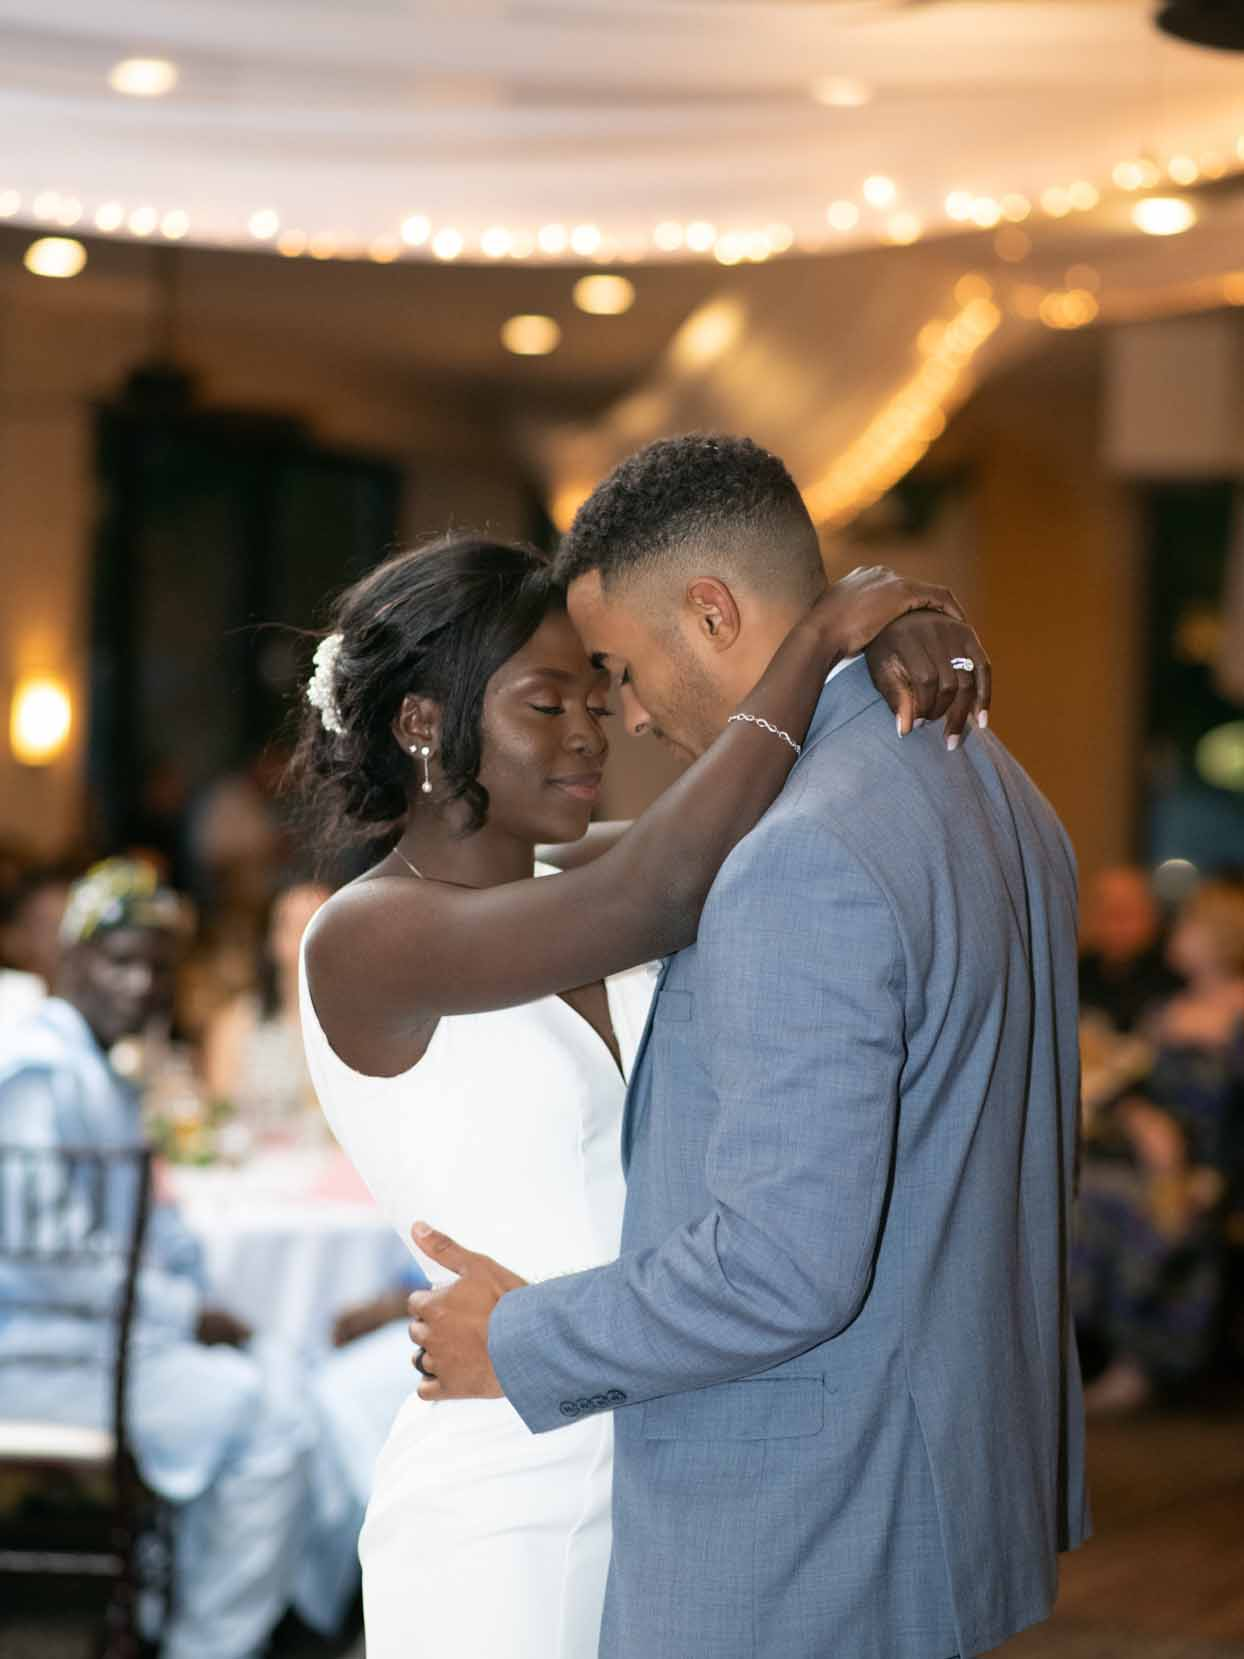 Enyo & Etienne Share a Romantic First Dance at Palm Valley, AZ